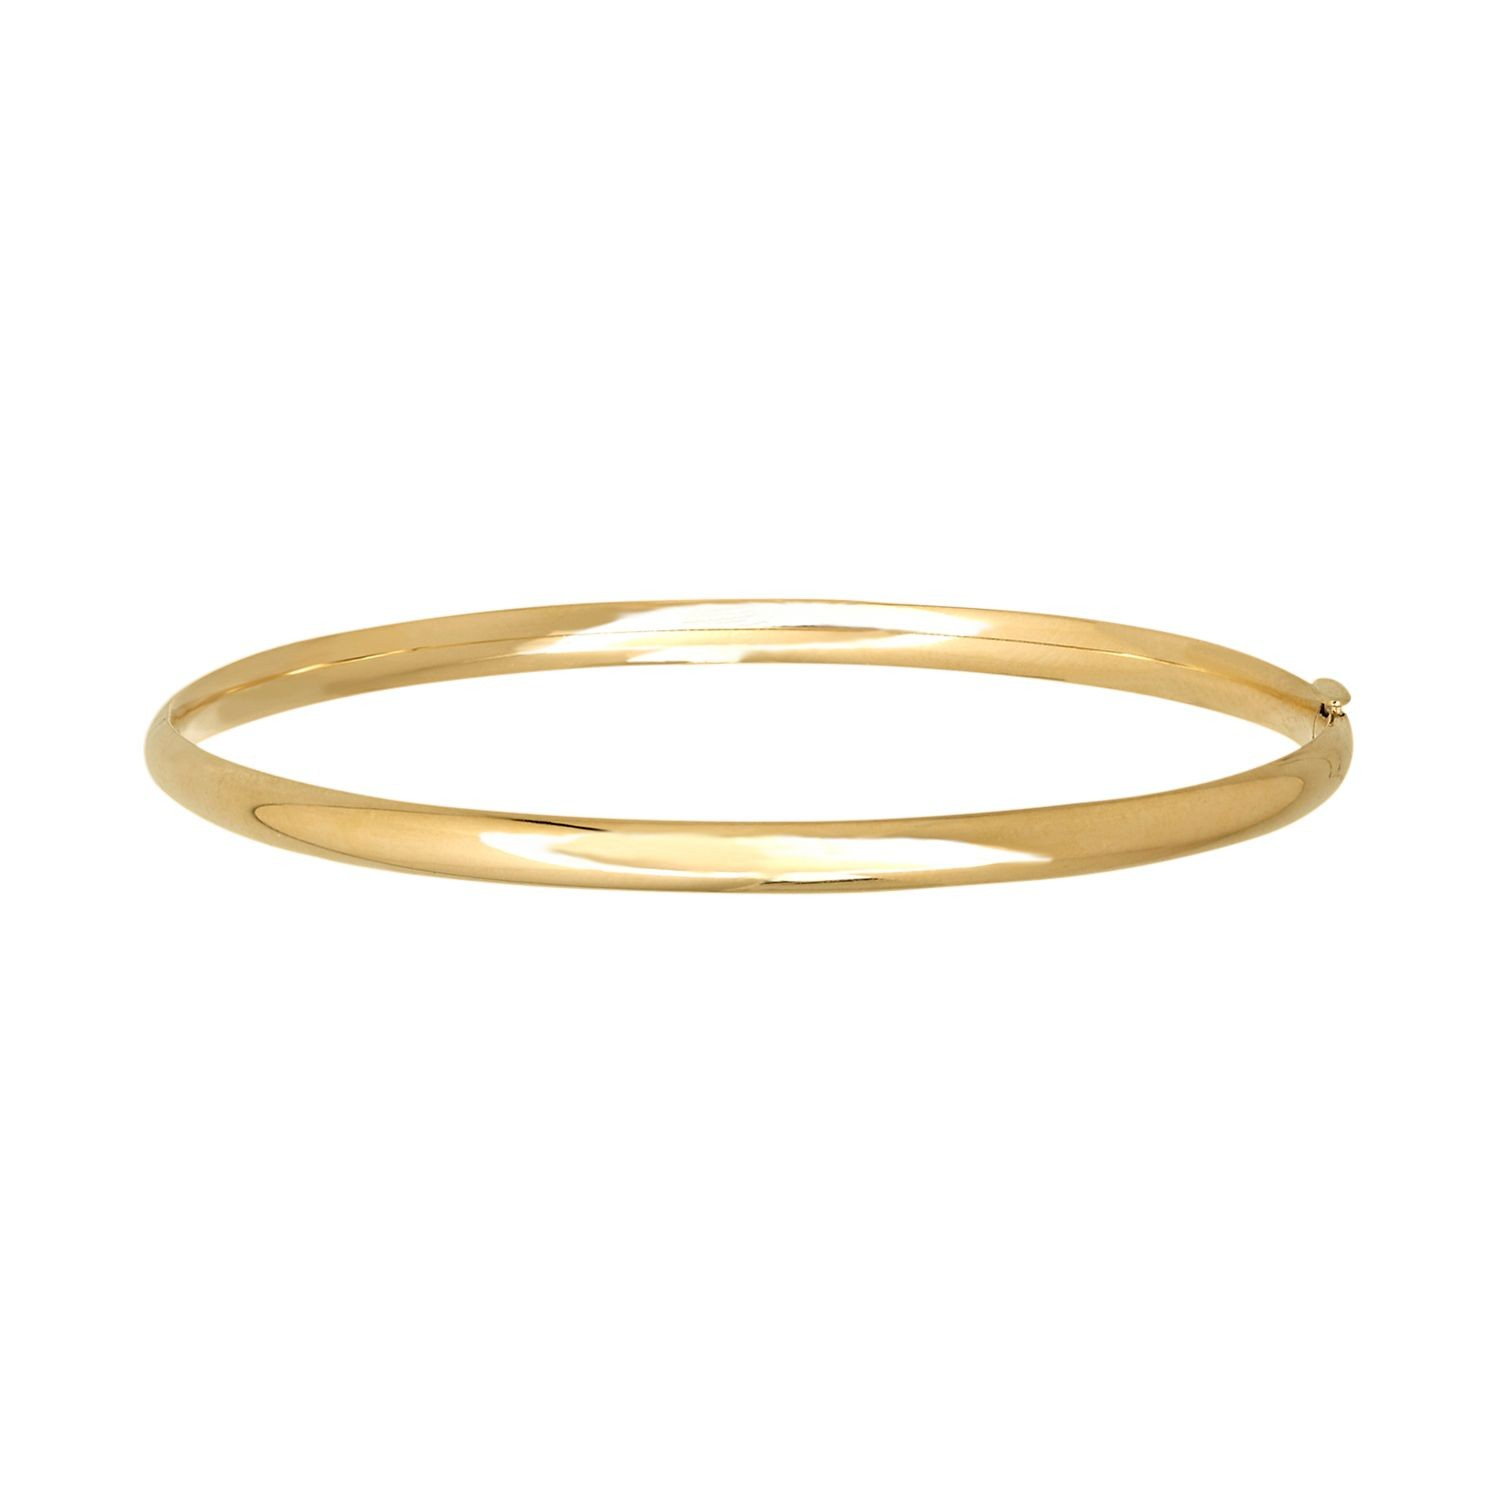 Everlasting Gold 14k Gold Bangle Bracelet